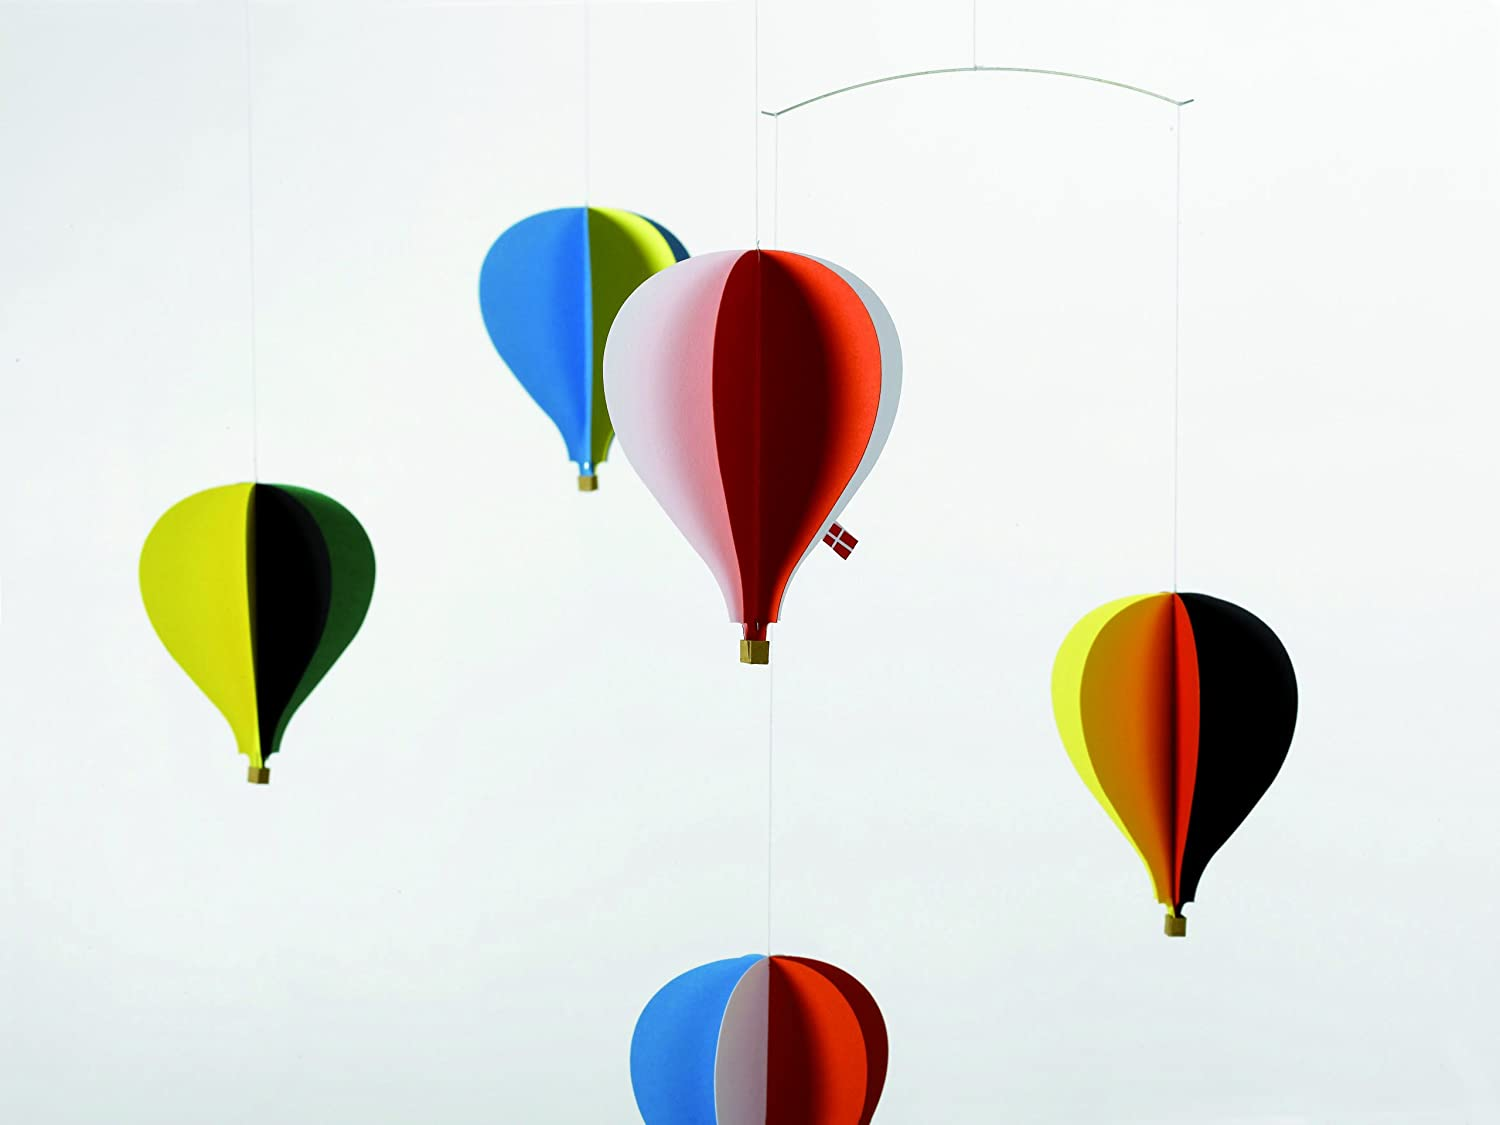 amazoncom  flensted mobiles  balloon hanging nursery mobile  - amazoncom  flensted mobiles  balloon hanging nursery mobile   inchescardboard  baby mobile for crib  baby